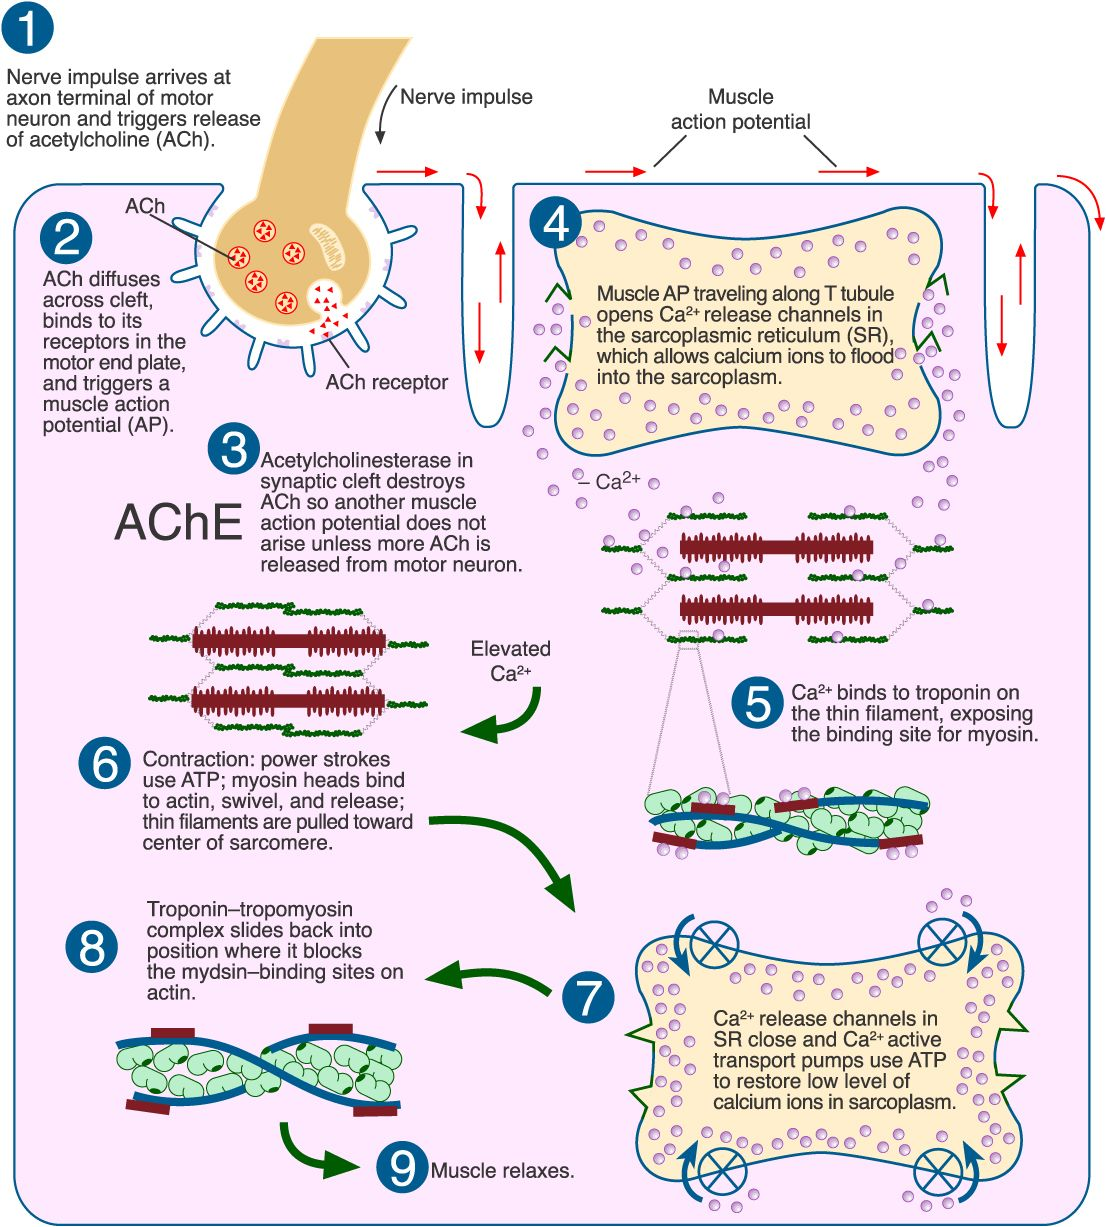 best sliding filament theory explanation video i've found so far, Muscles